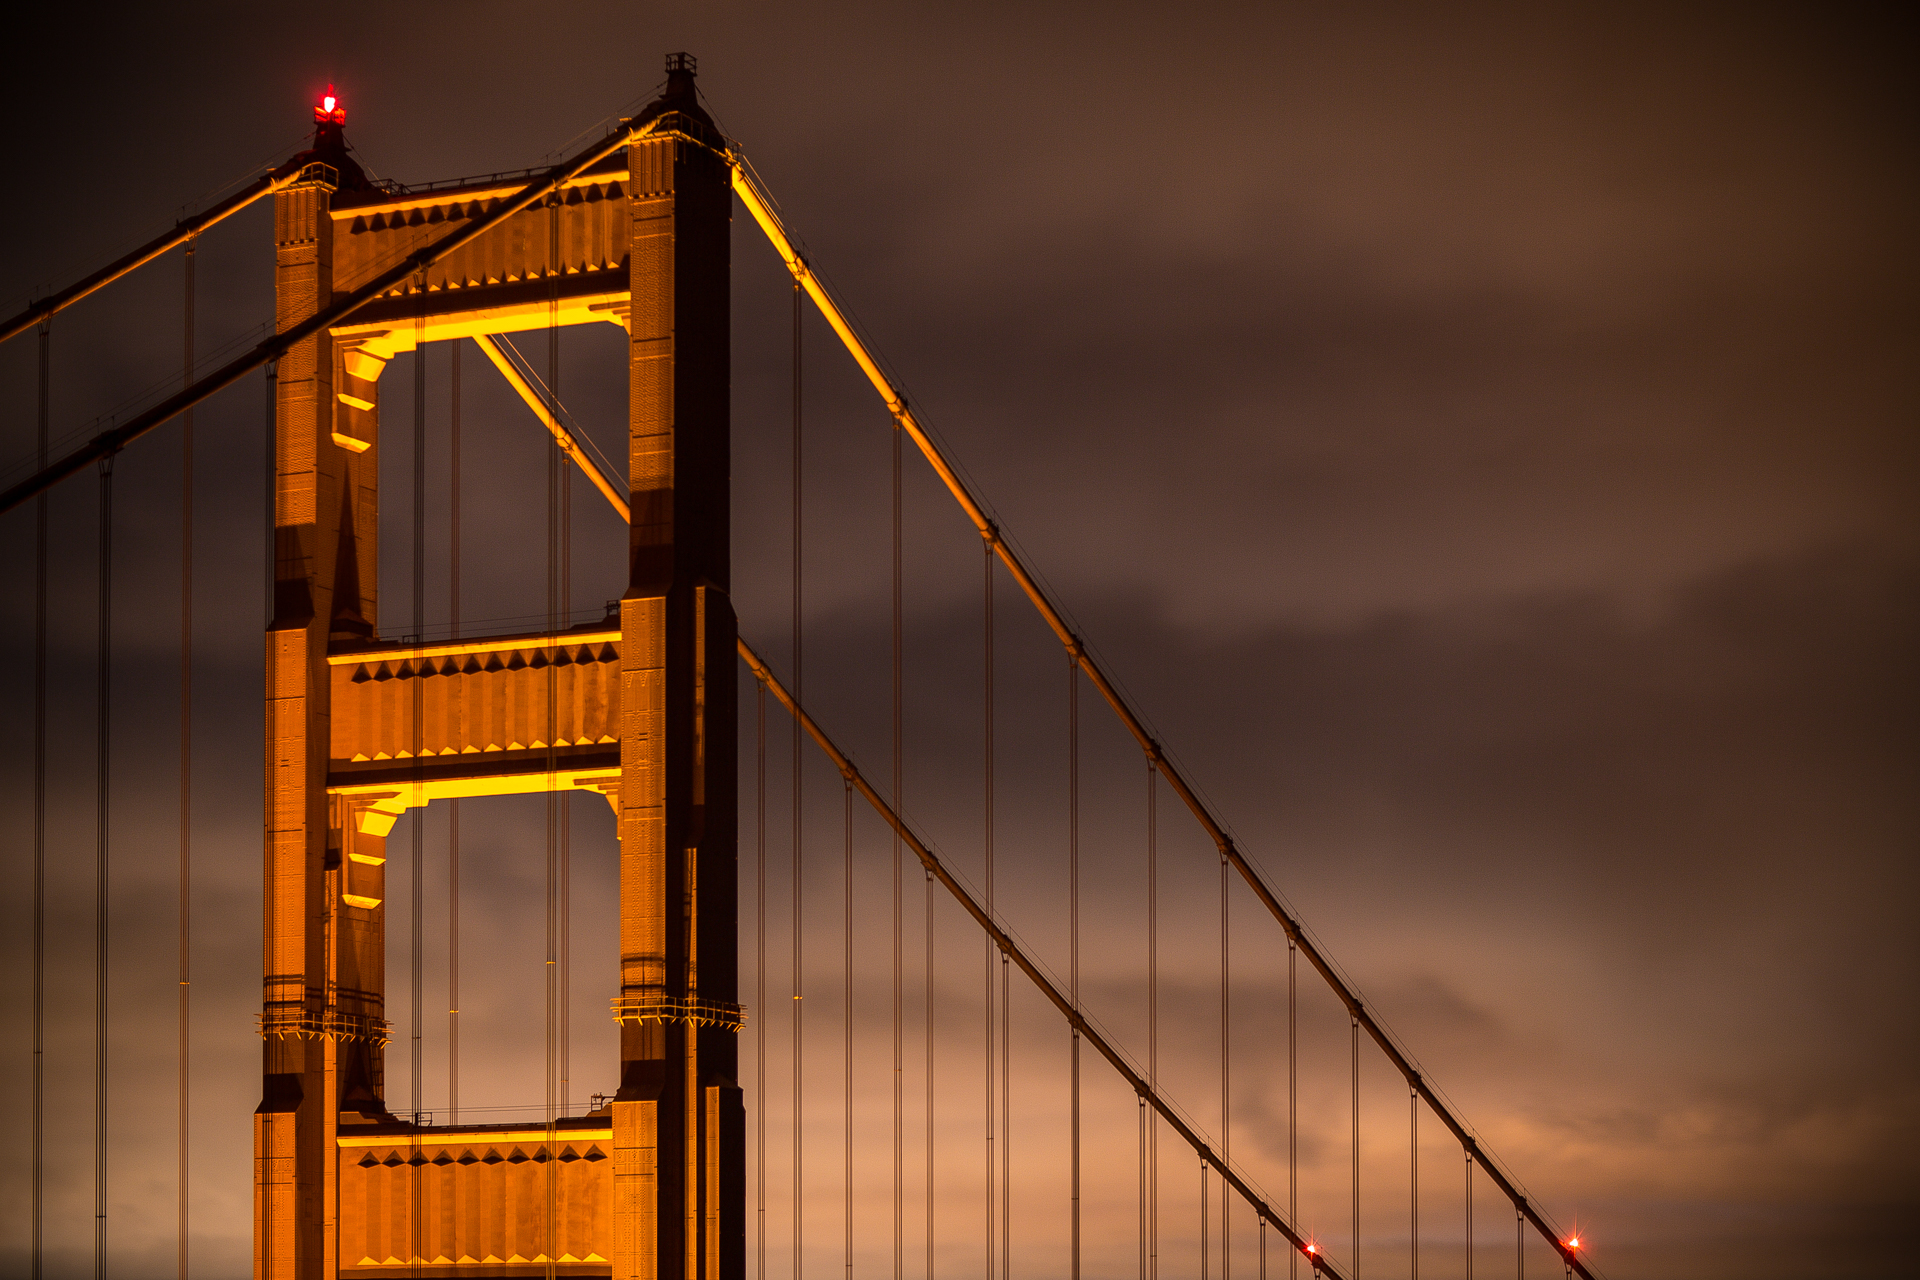 San_Francisco_Wedding_Photographer_Sees_The_Day_016.jpg